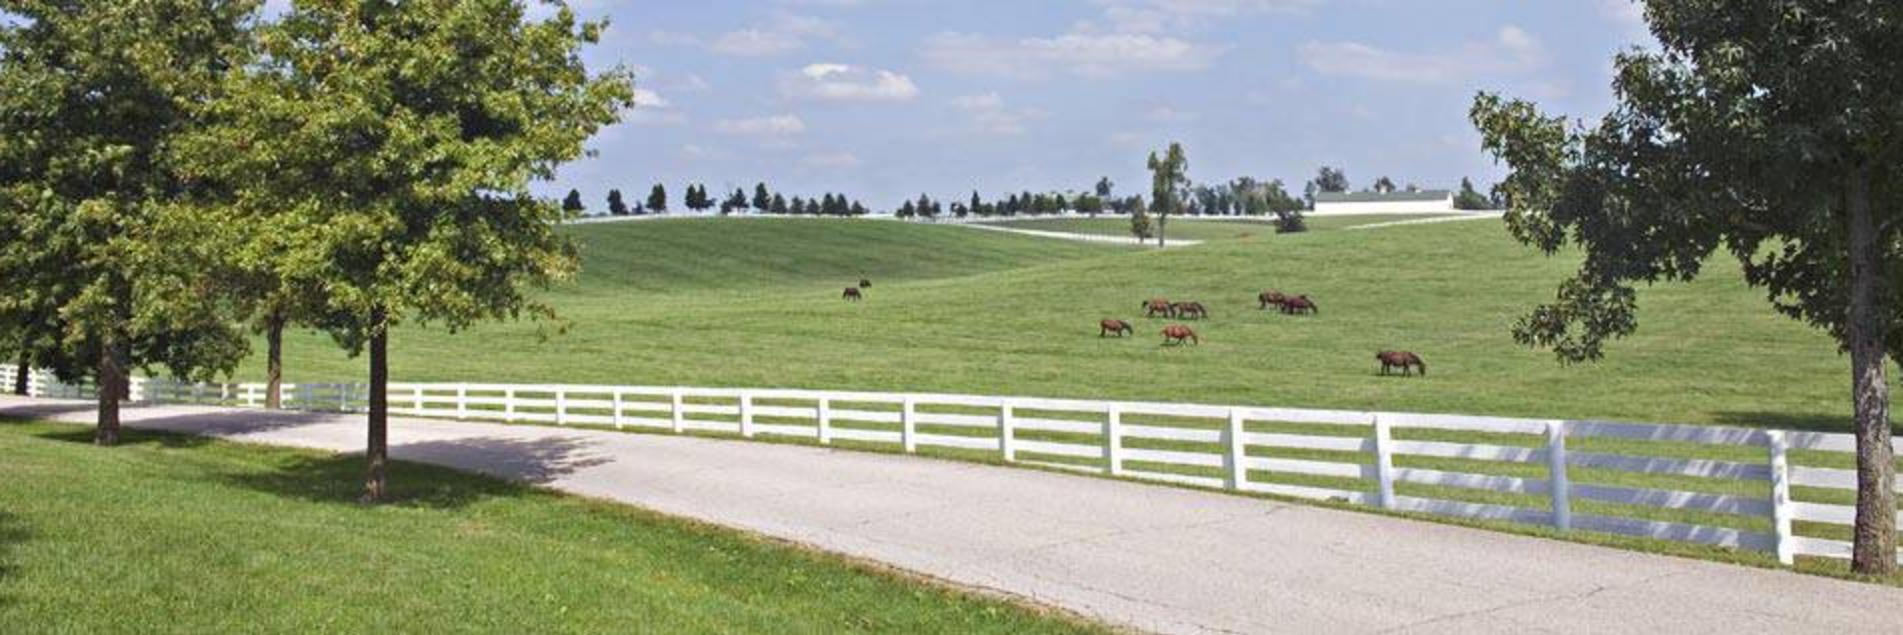 Roadside Horse Farm